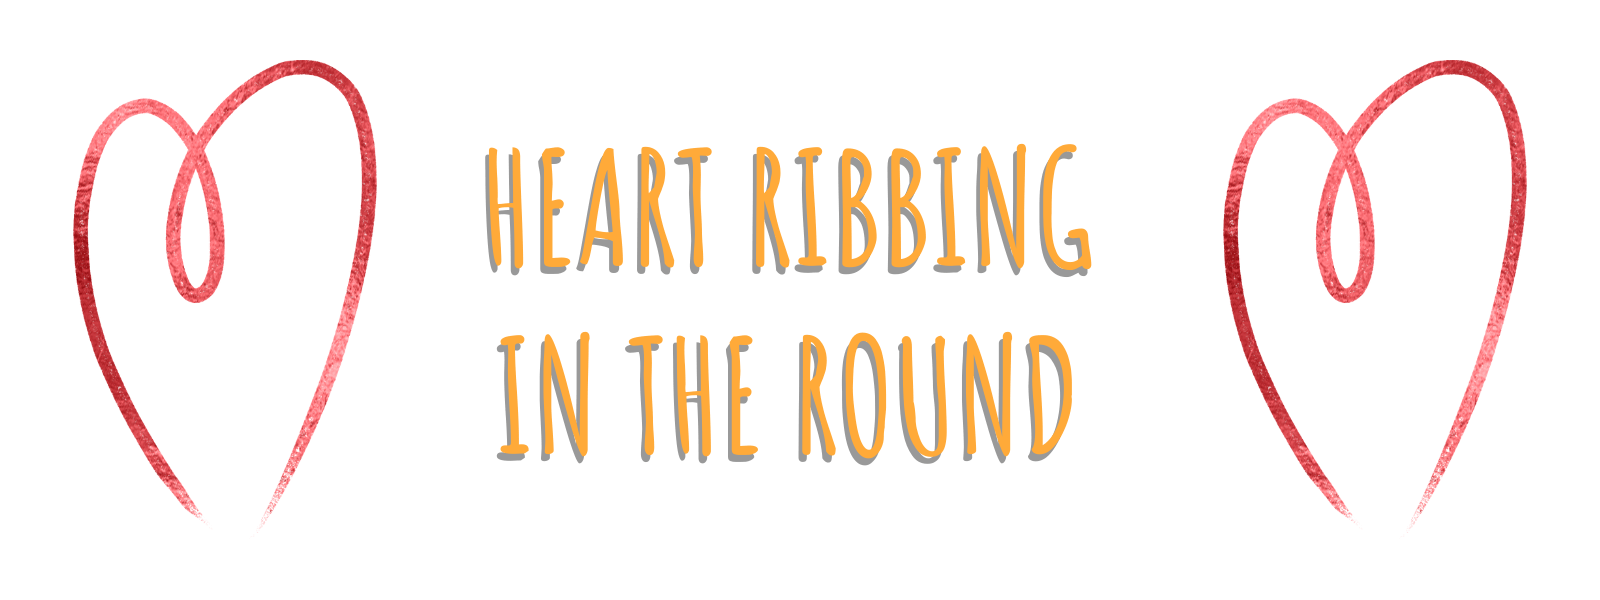 a grapich saying heart ribbing in the round